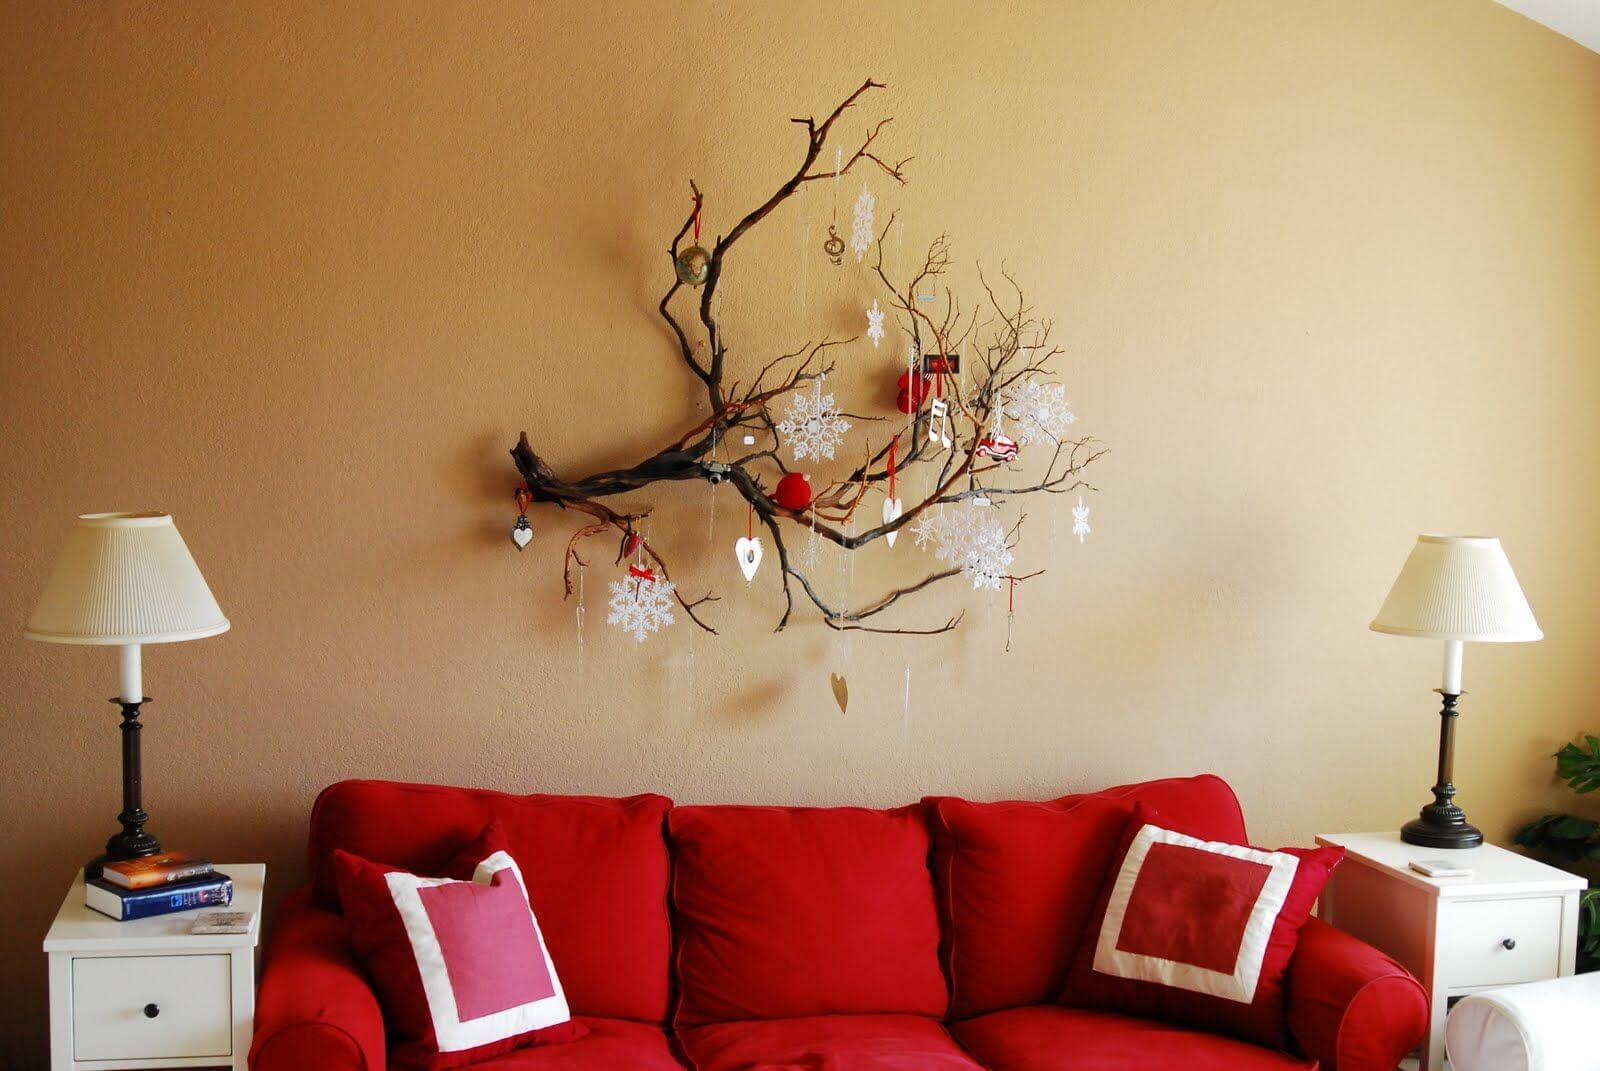 ordinary Home Wall Decor Ideas Part - 19: Old Tree Branch Decorative Wall Hanging